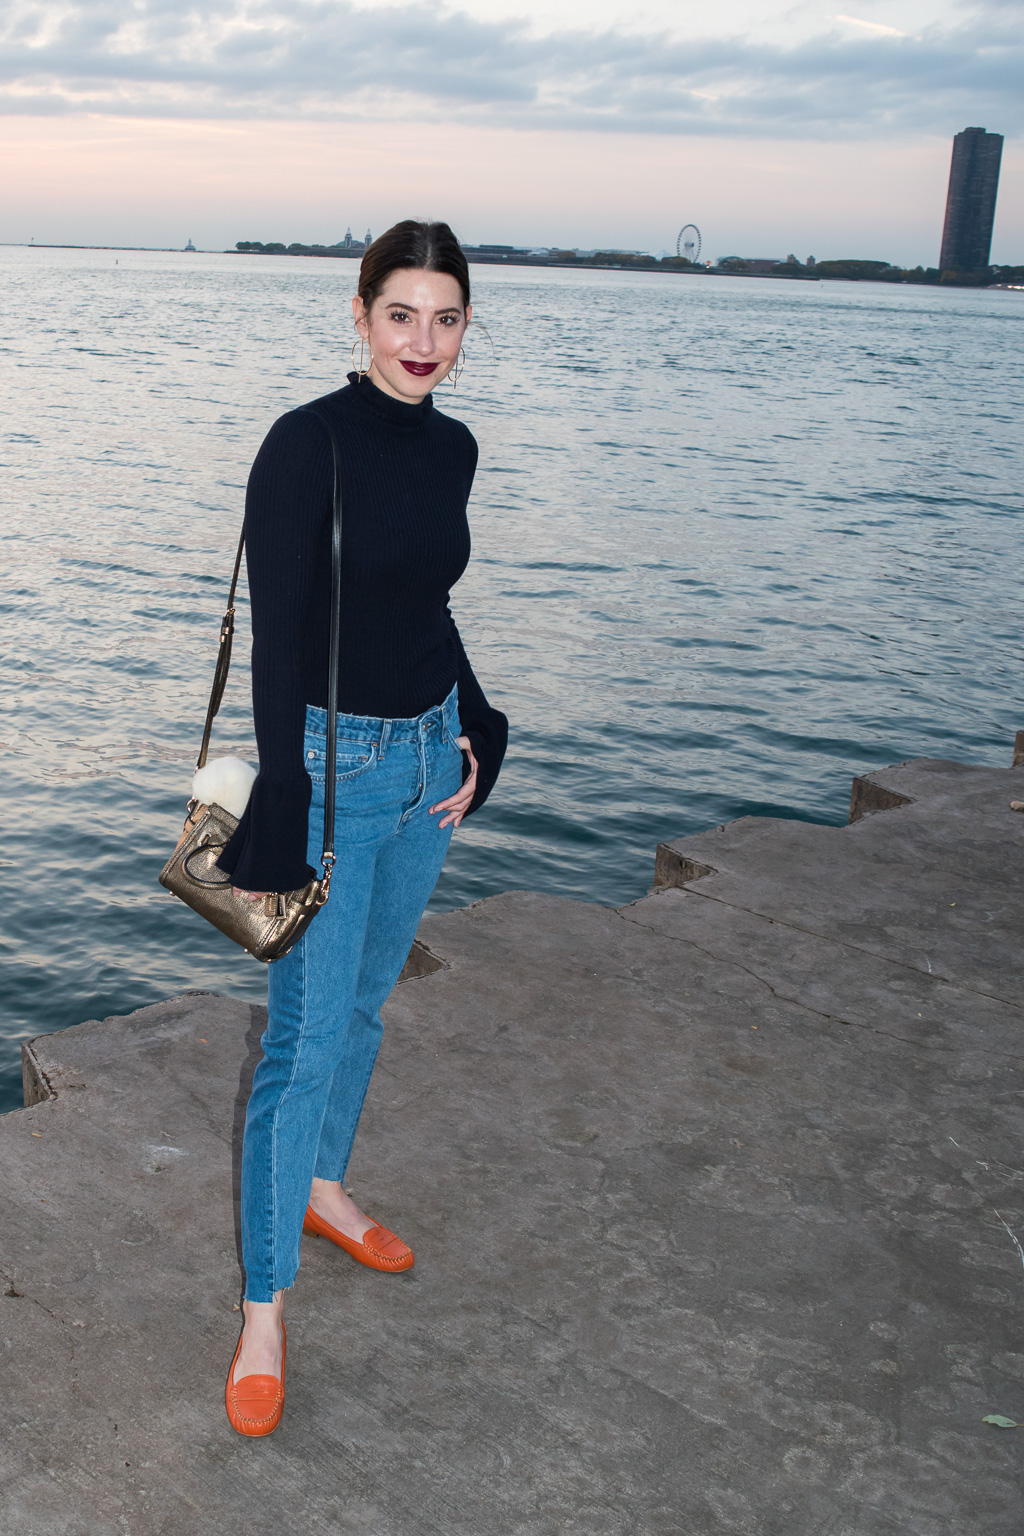 It's all in the details when putting an outfit together. Keeping your outfit simple is great, but create visual interest through small details that pop like bell-sleeves, scallops, jeans with high-low cut hems, large hoop earrings, and colorful orange loafers.